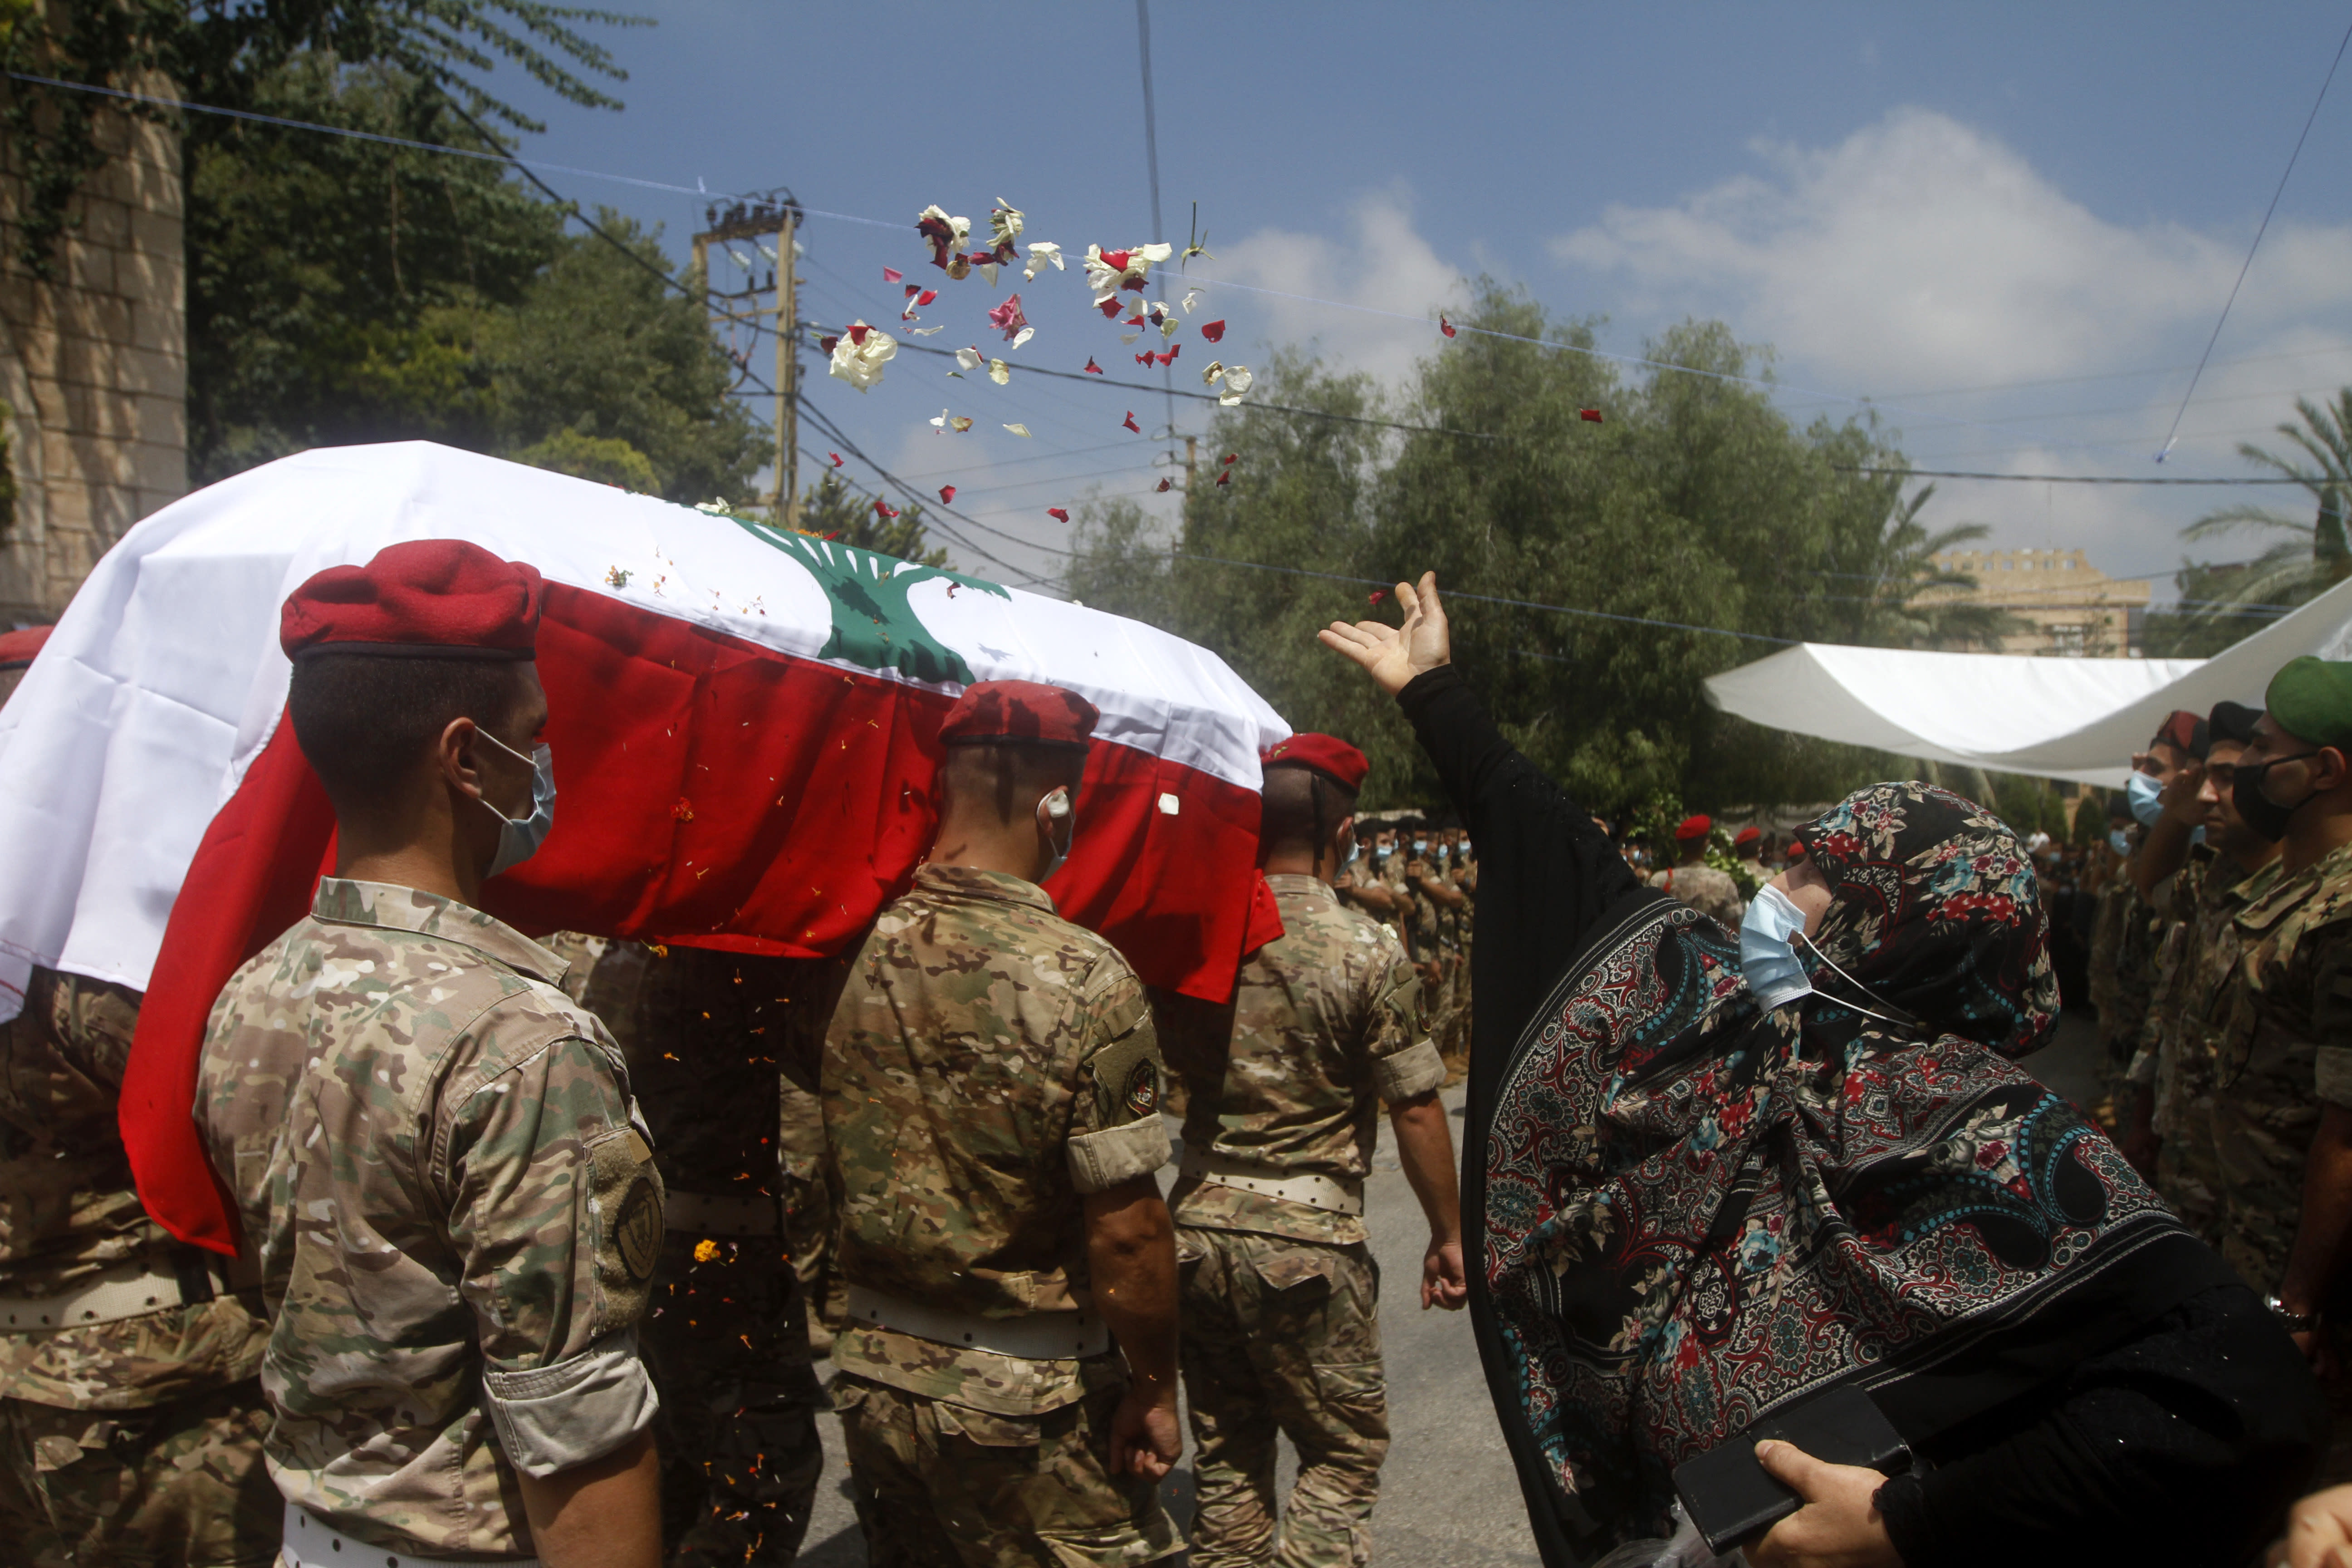 A woman throws flowers over Lebanese army soldiers who carry the coffin of lieutenant Ayman Noureddine, who was killed by Tuesday's explosion that hit the seaport of Beirut, during his funeral procession, in Numeiriyeh village, south Lebanon, Friday, Aug. 7, 2020. Rescue teams were still searching the rubble of Beirut's port for bodies on Friday, nearly three days after a massive explosion sent a wave of destruction through Lebanon's capital. (AP Photo/Mohammed Zaatari)